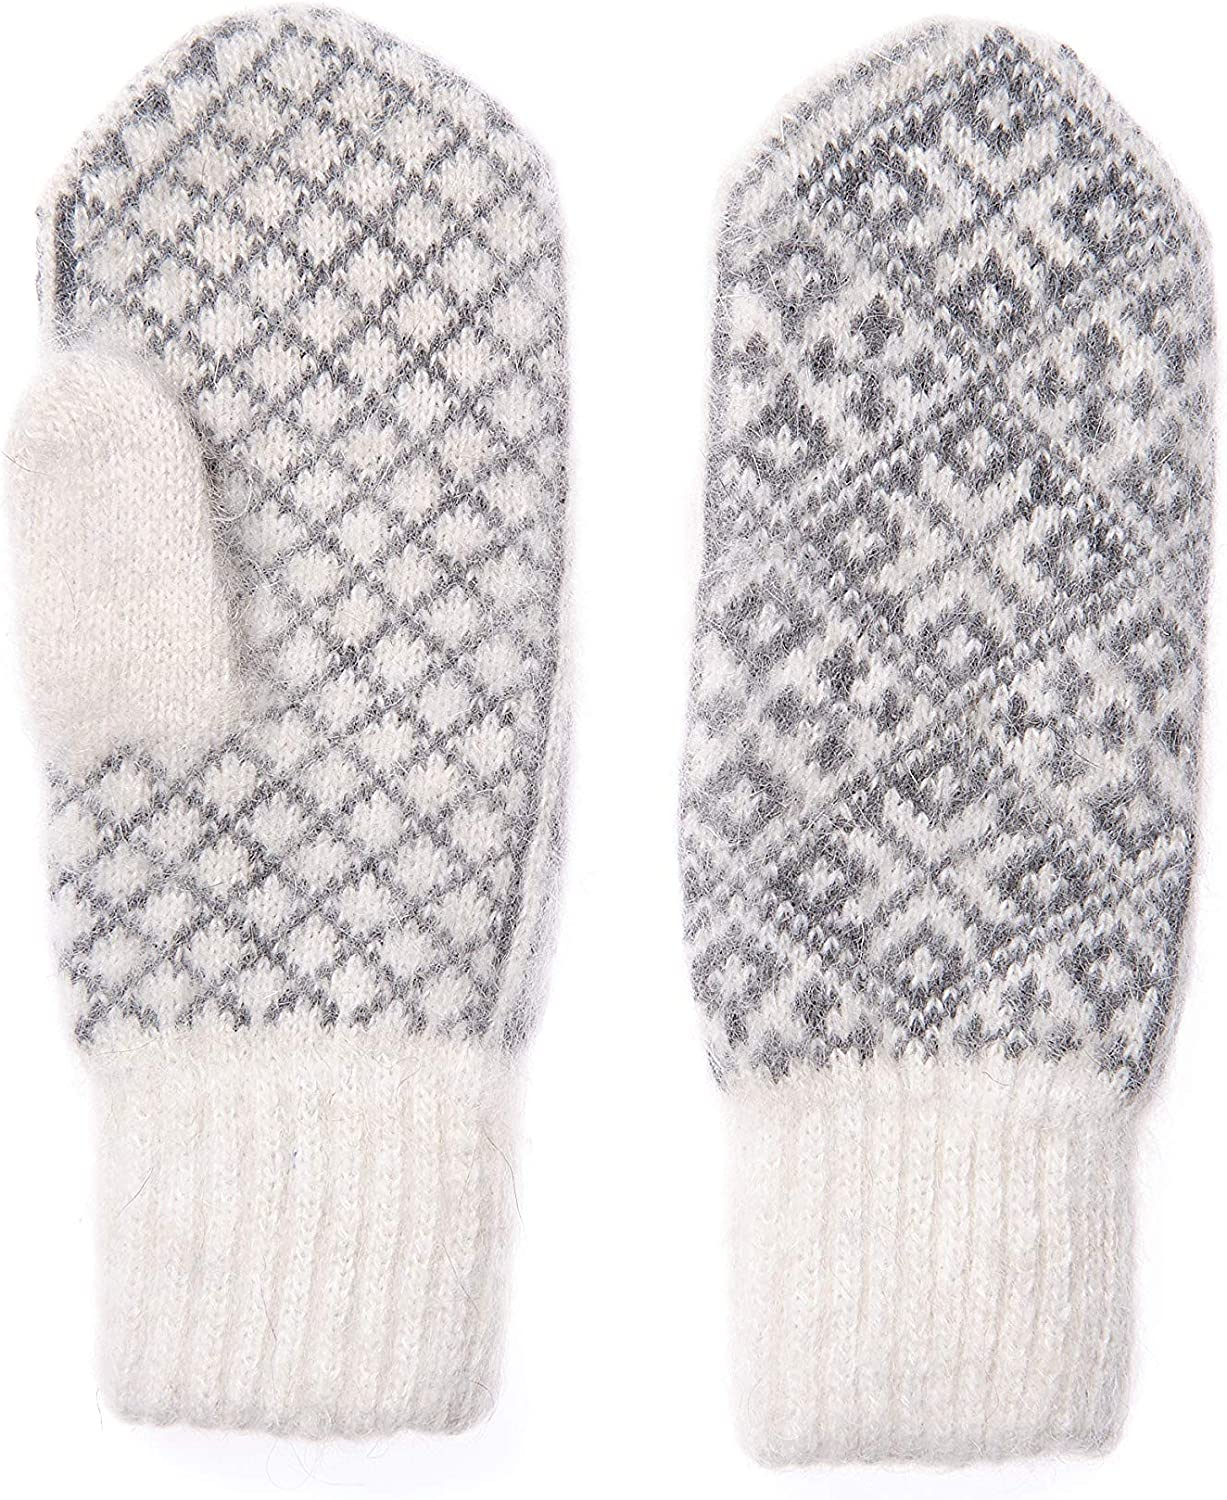 Wool Mittens with Scandinavian Ornament, Warm Winter Mittens for Cold Weather, Gloves Knitted of Natural Wool with Goat Wool, Size Men's M, Women's L